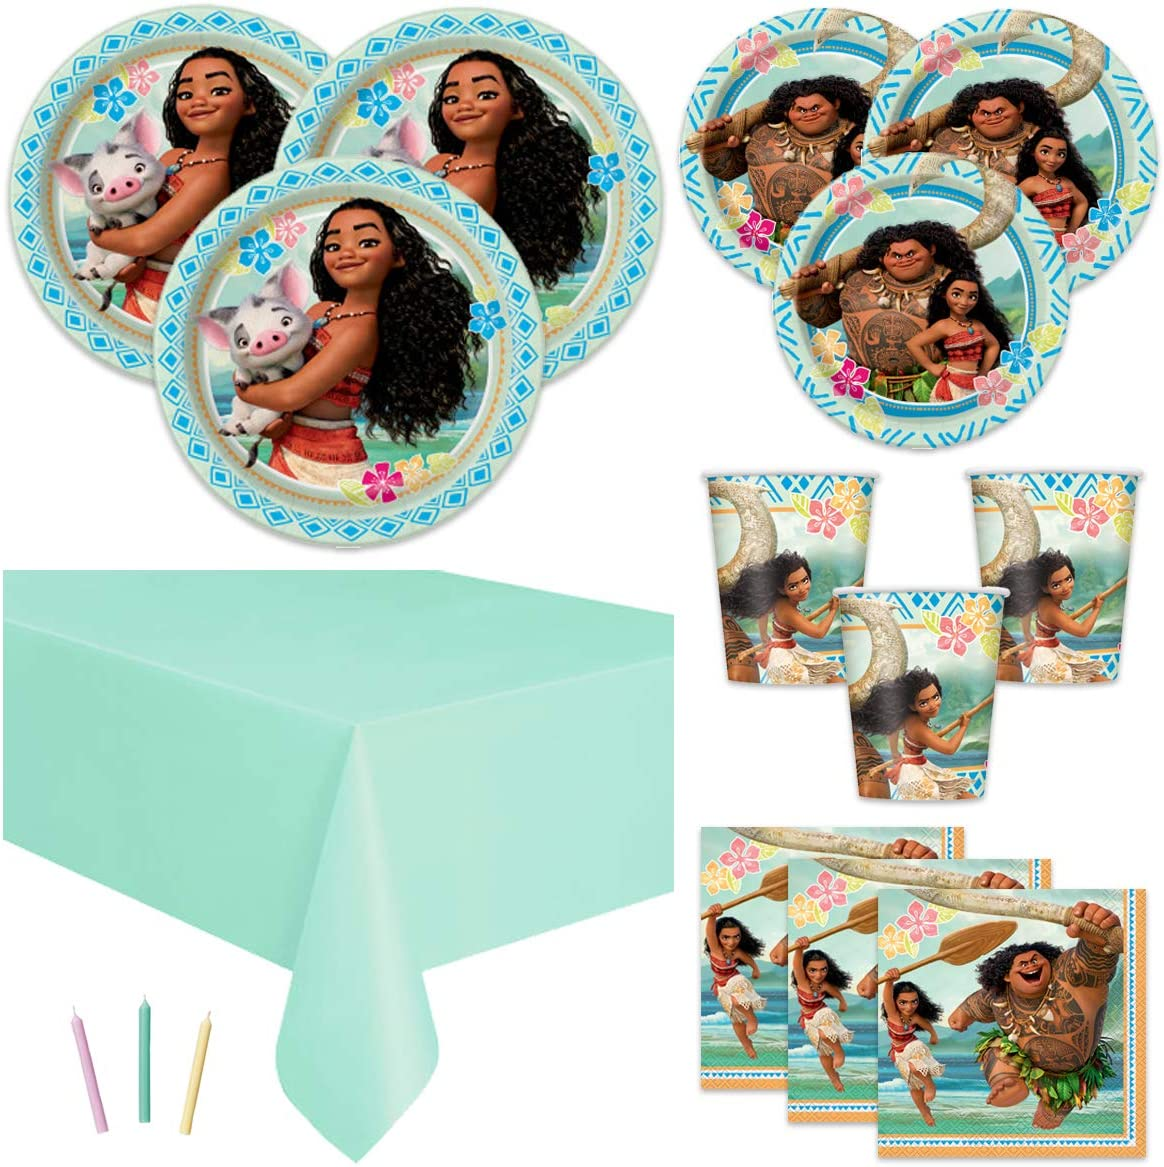 Moana Theme Birthday Party Supplies Set - Tablecover, Plates, Cups, Napkins, Candles